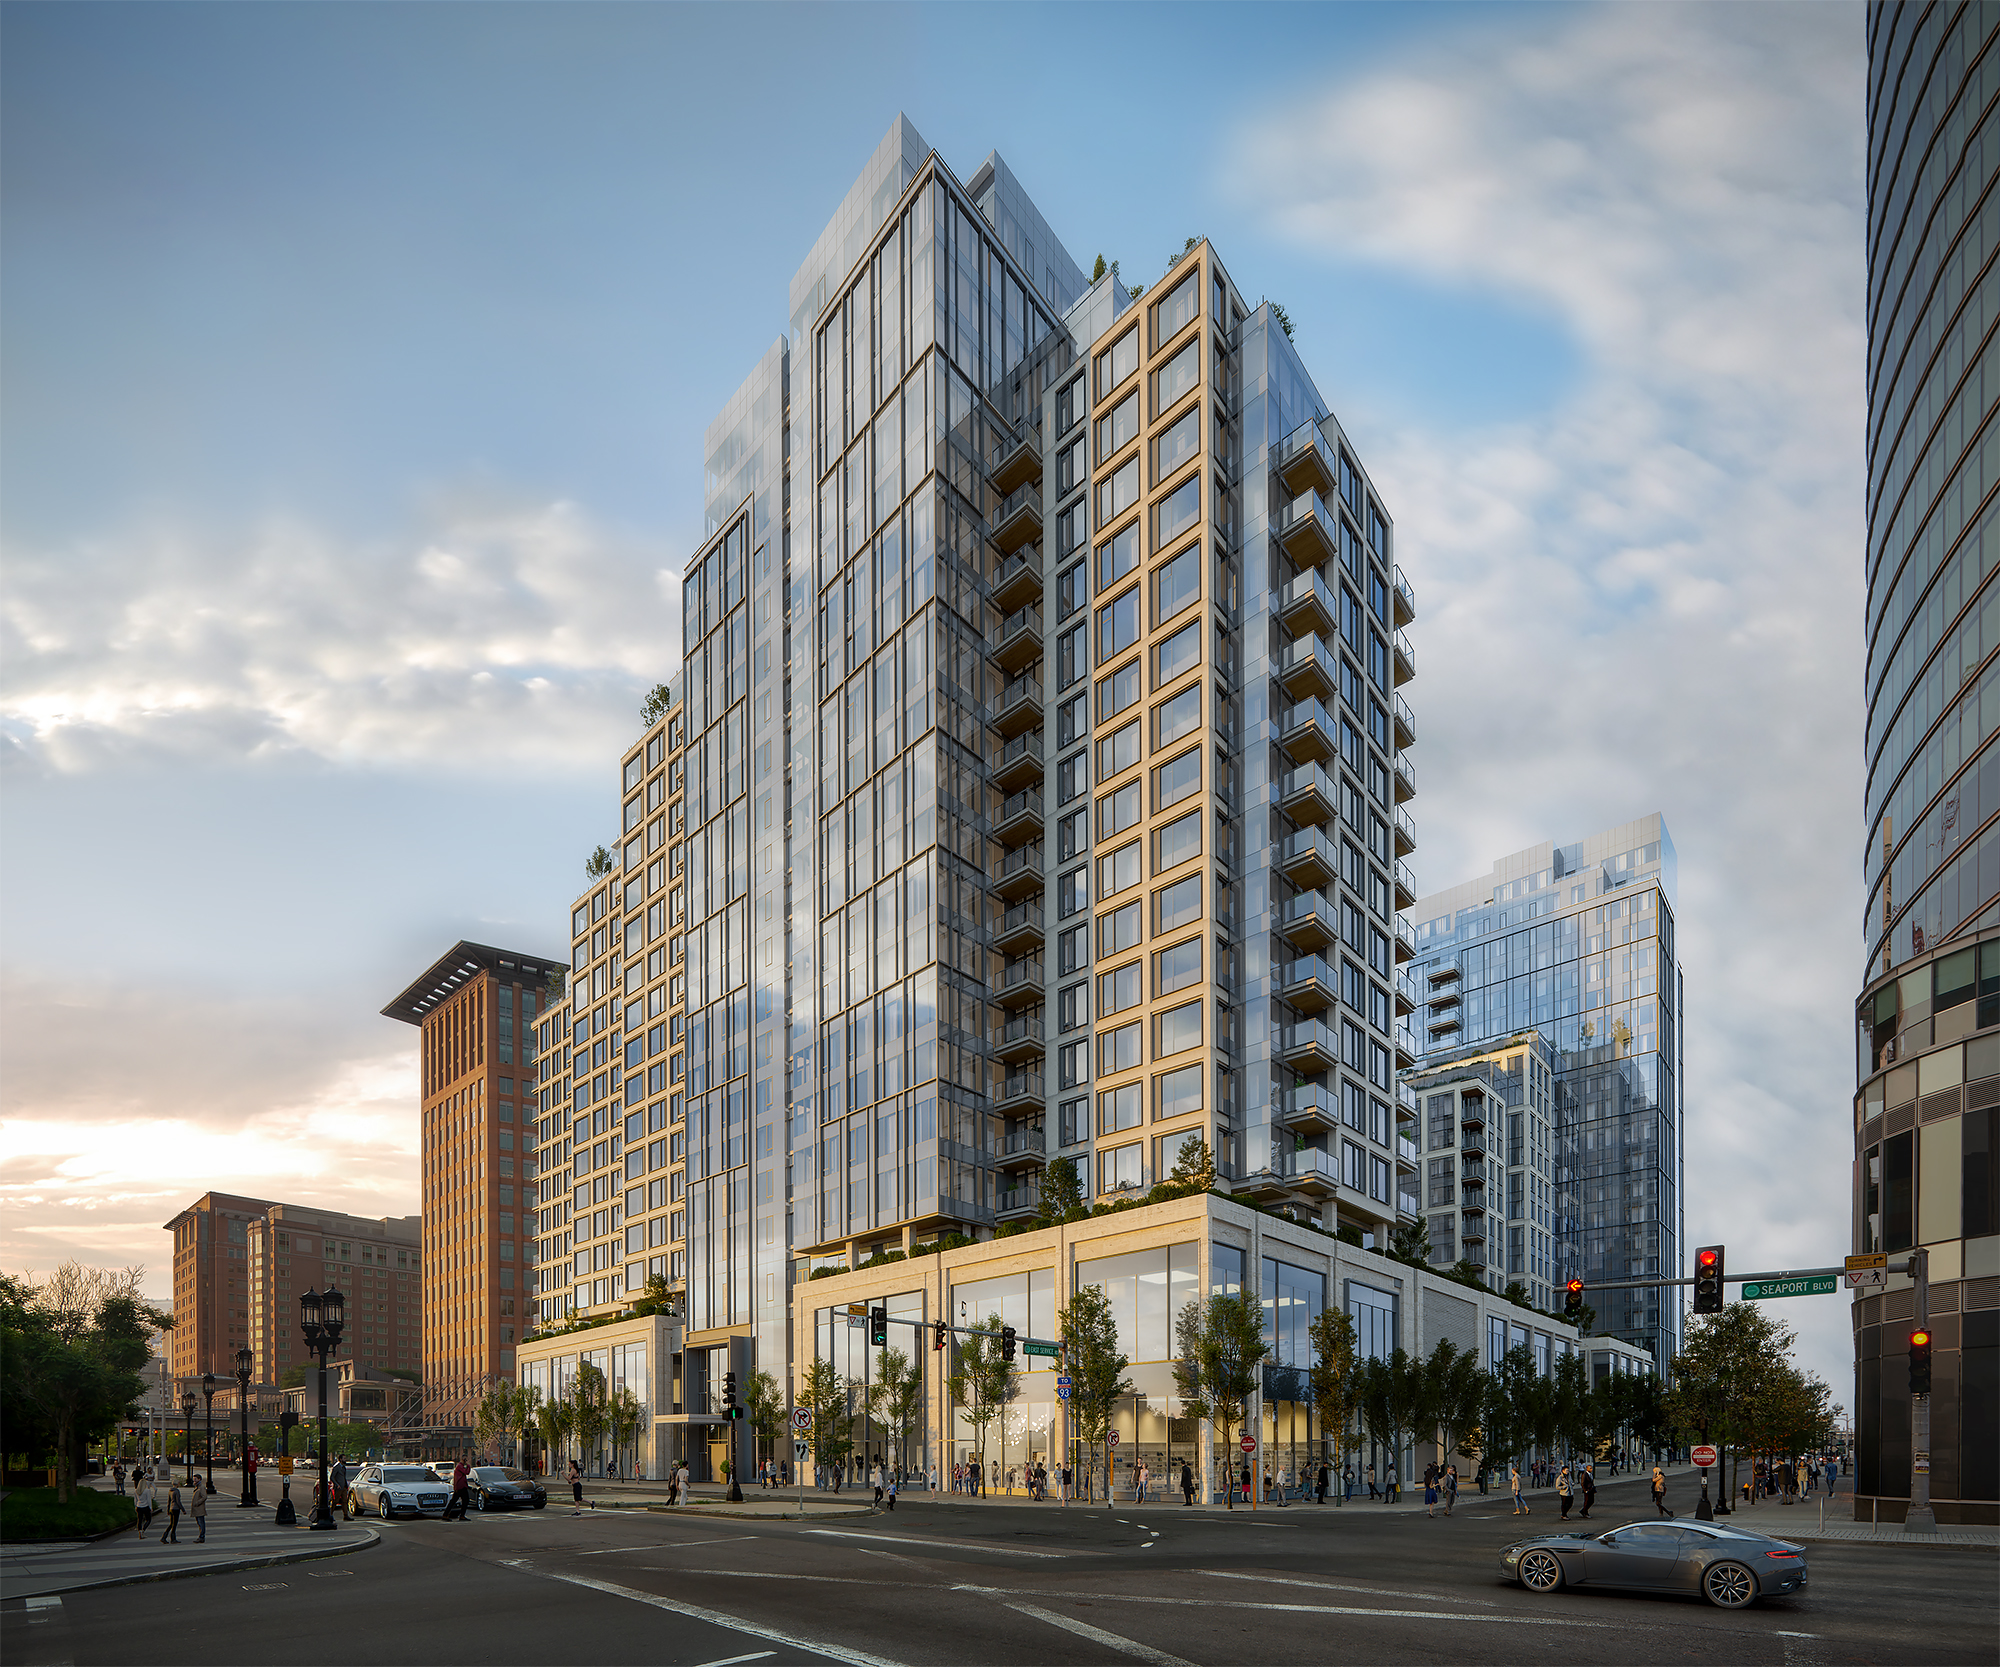 The EchelonSeaport - Address: 133 Seaport BlvdNumber of Homes: 717 condosExpected Occupancy: Fall 2019Architecture and Interior Design: Kohn Pendersen Fox (PKF) and Jeffrey Beers InternationalNotable Features: 3 Pools, Landscaped Courtyard, Innovation Center